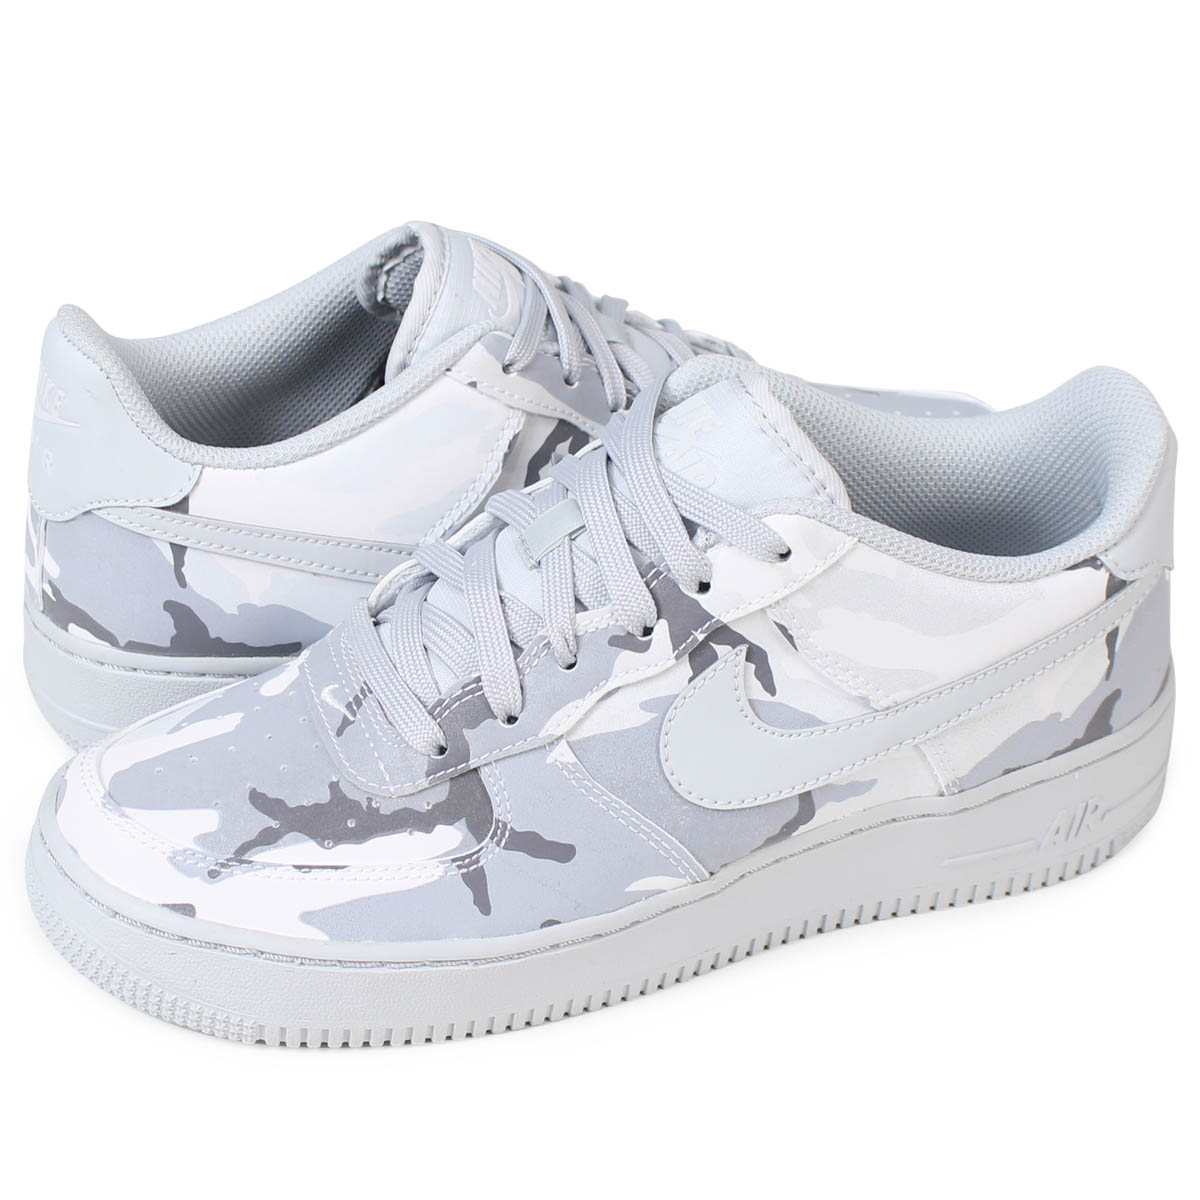 NIKE AIR FORCE 1 GS Nike air force 1 LV8 Lady's sneakers 820,438 104 shoes white [load planned Shinnyu load in reservation product 1228 containing]